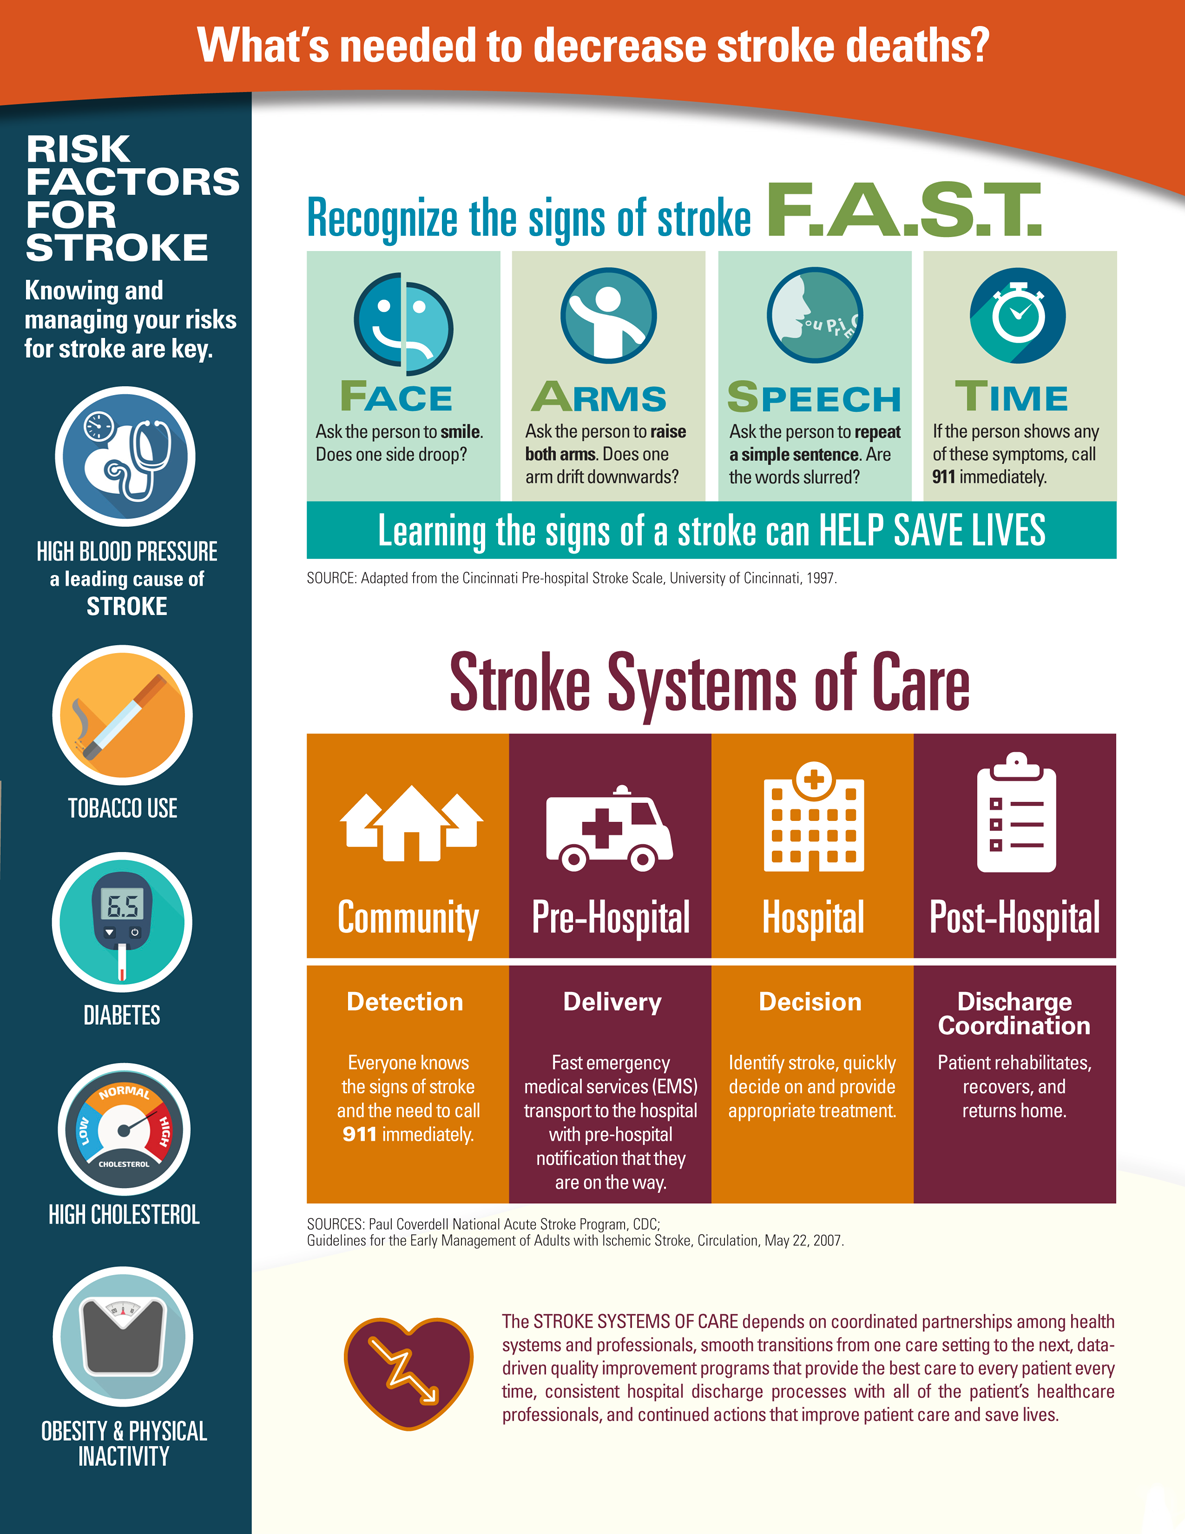 Preventing Stroke Deaths   VitalSigns   CDC